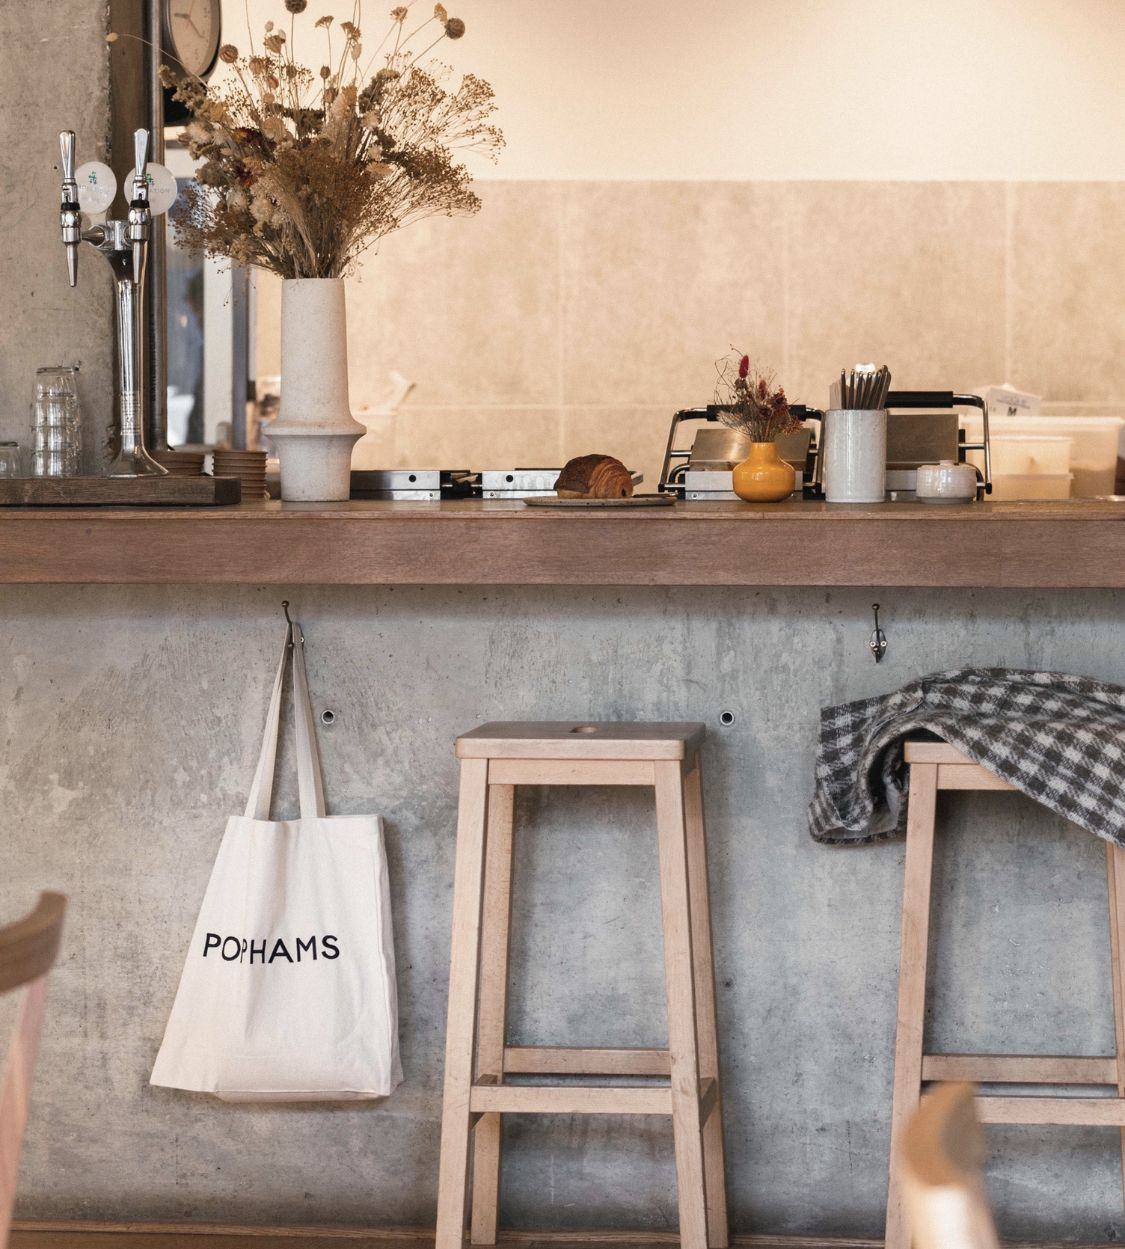 London's best restaurant merch includes this Pophams tote bag hanging from a bar